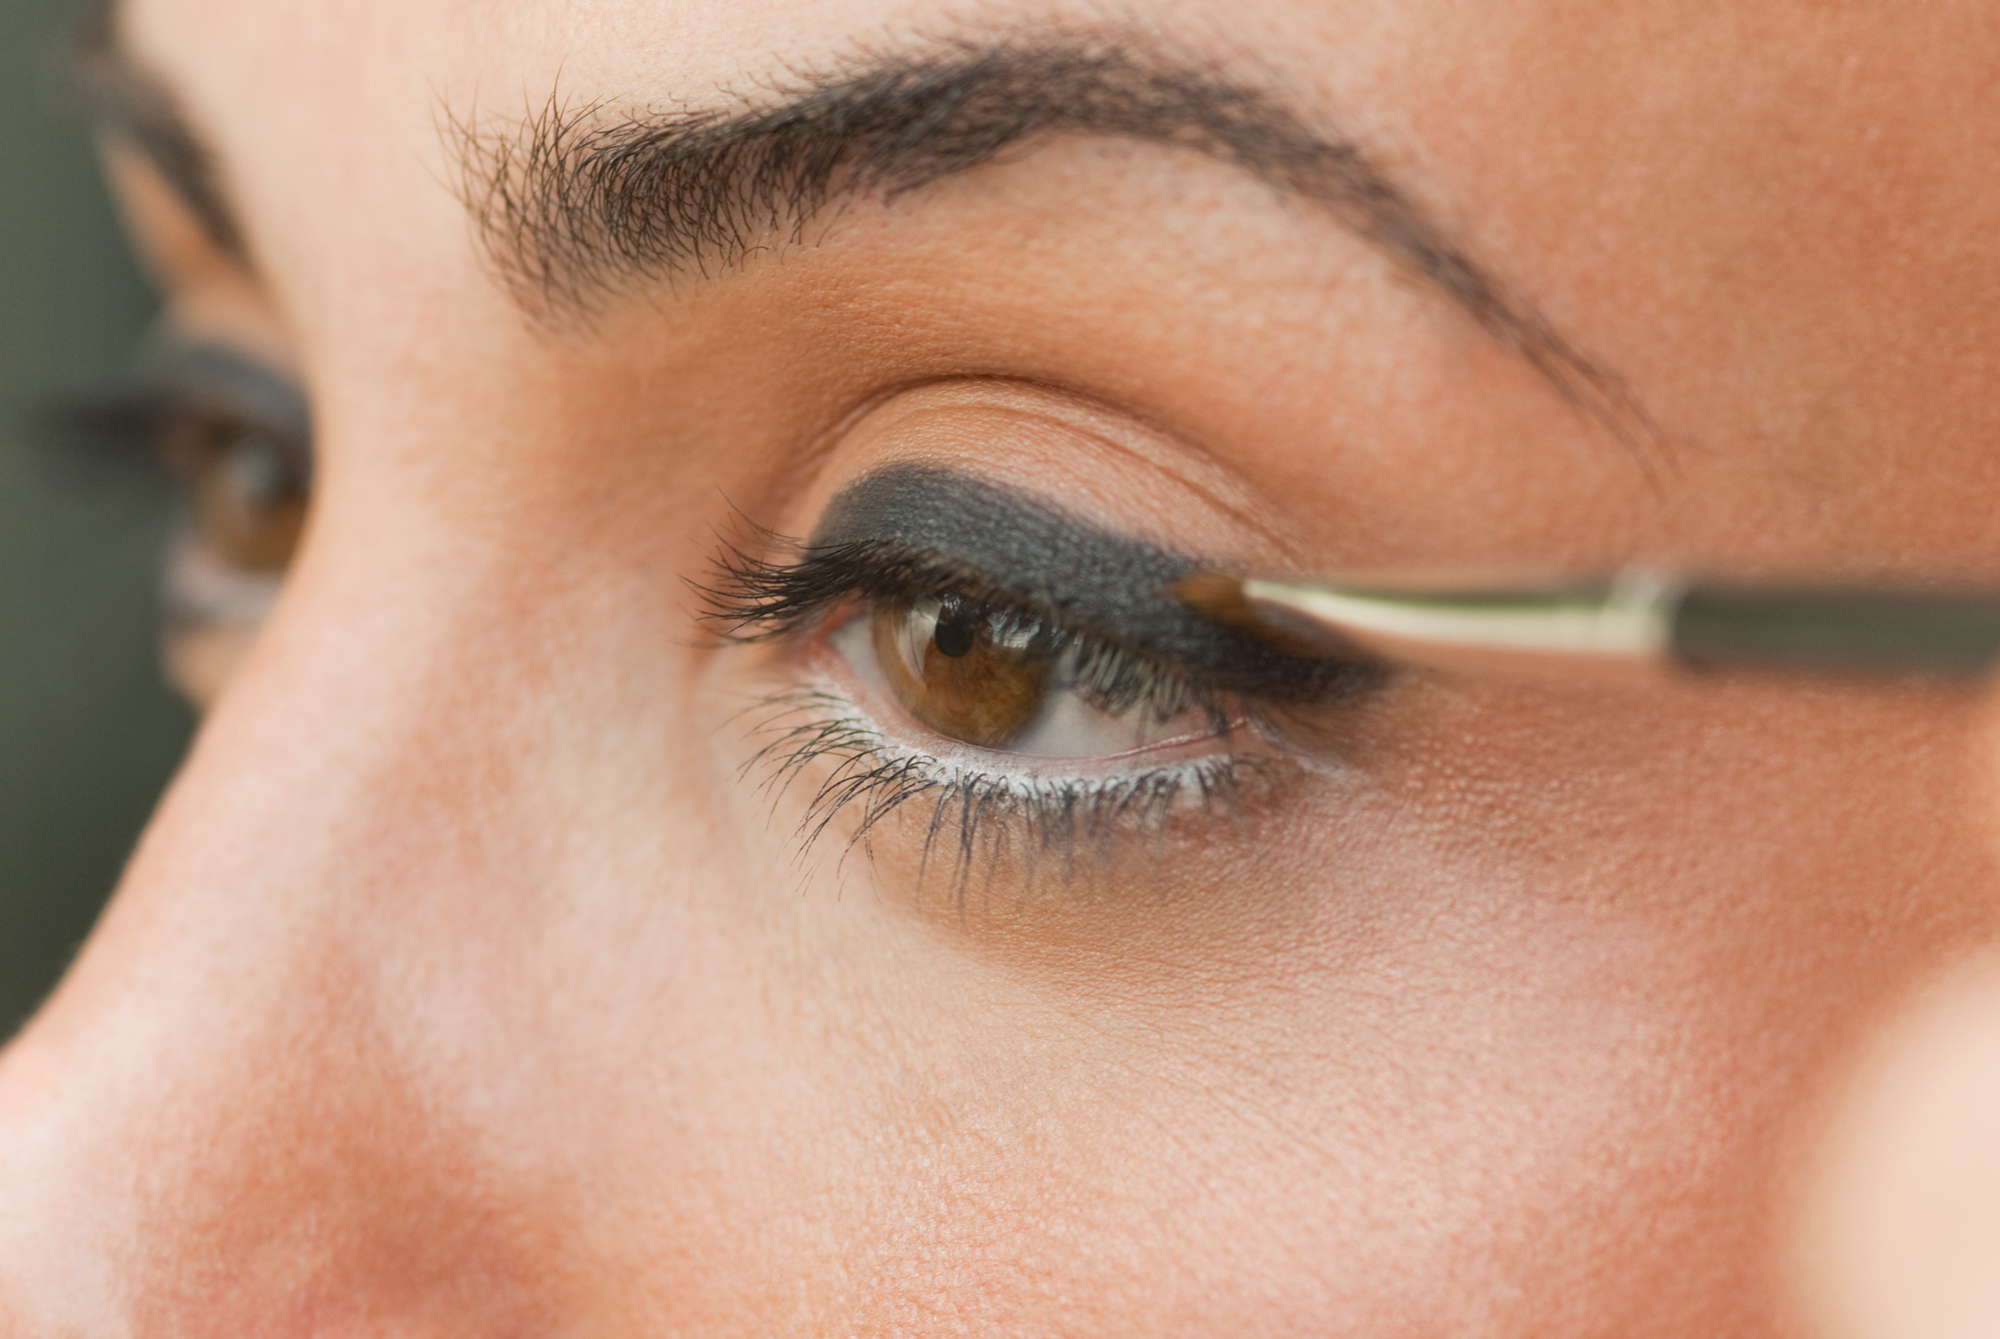 Should You Really Apply Concealer Before Eye Makeup?